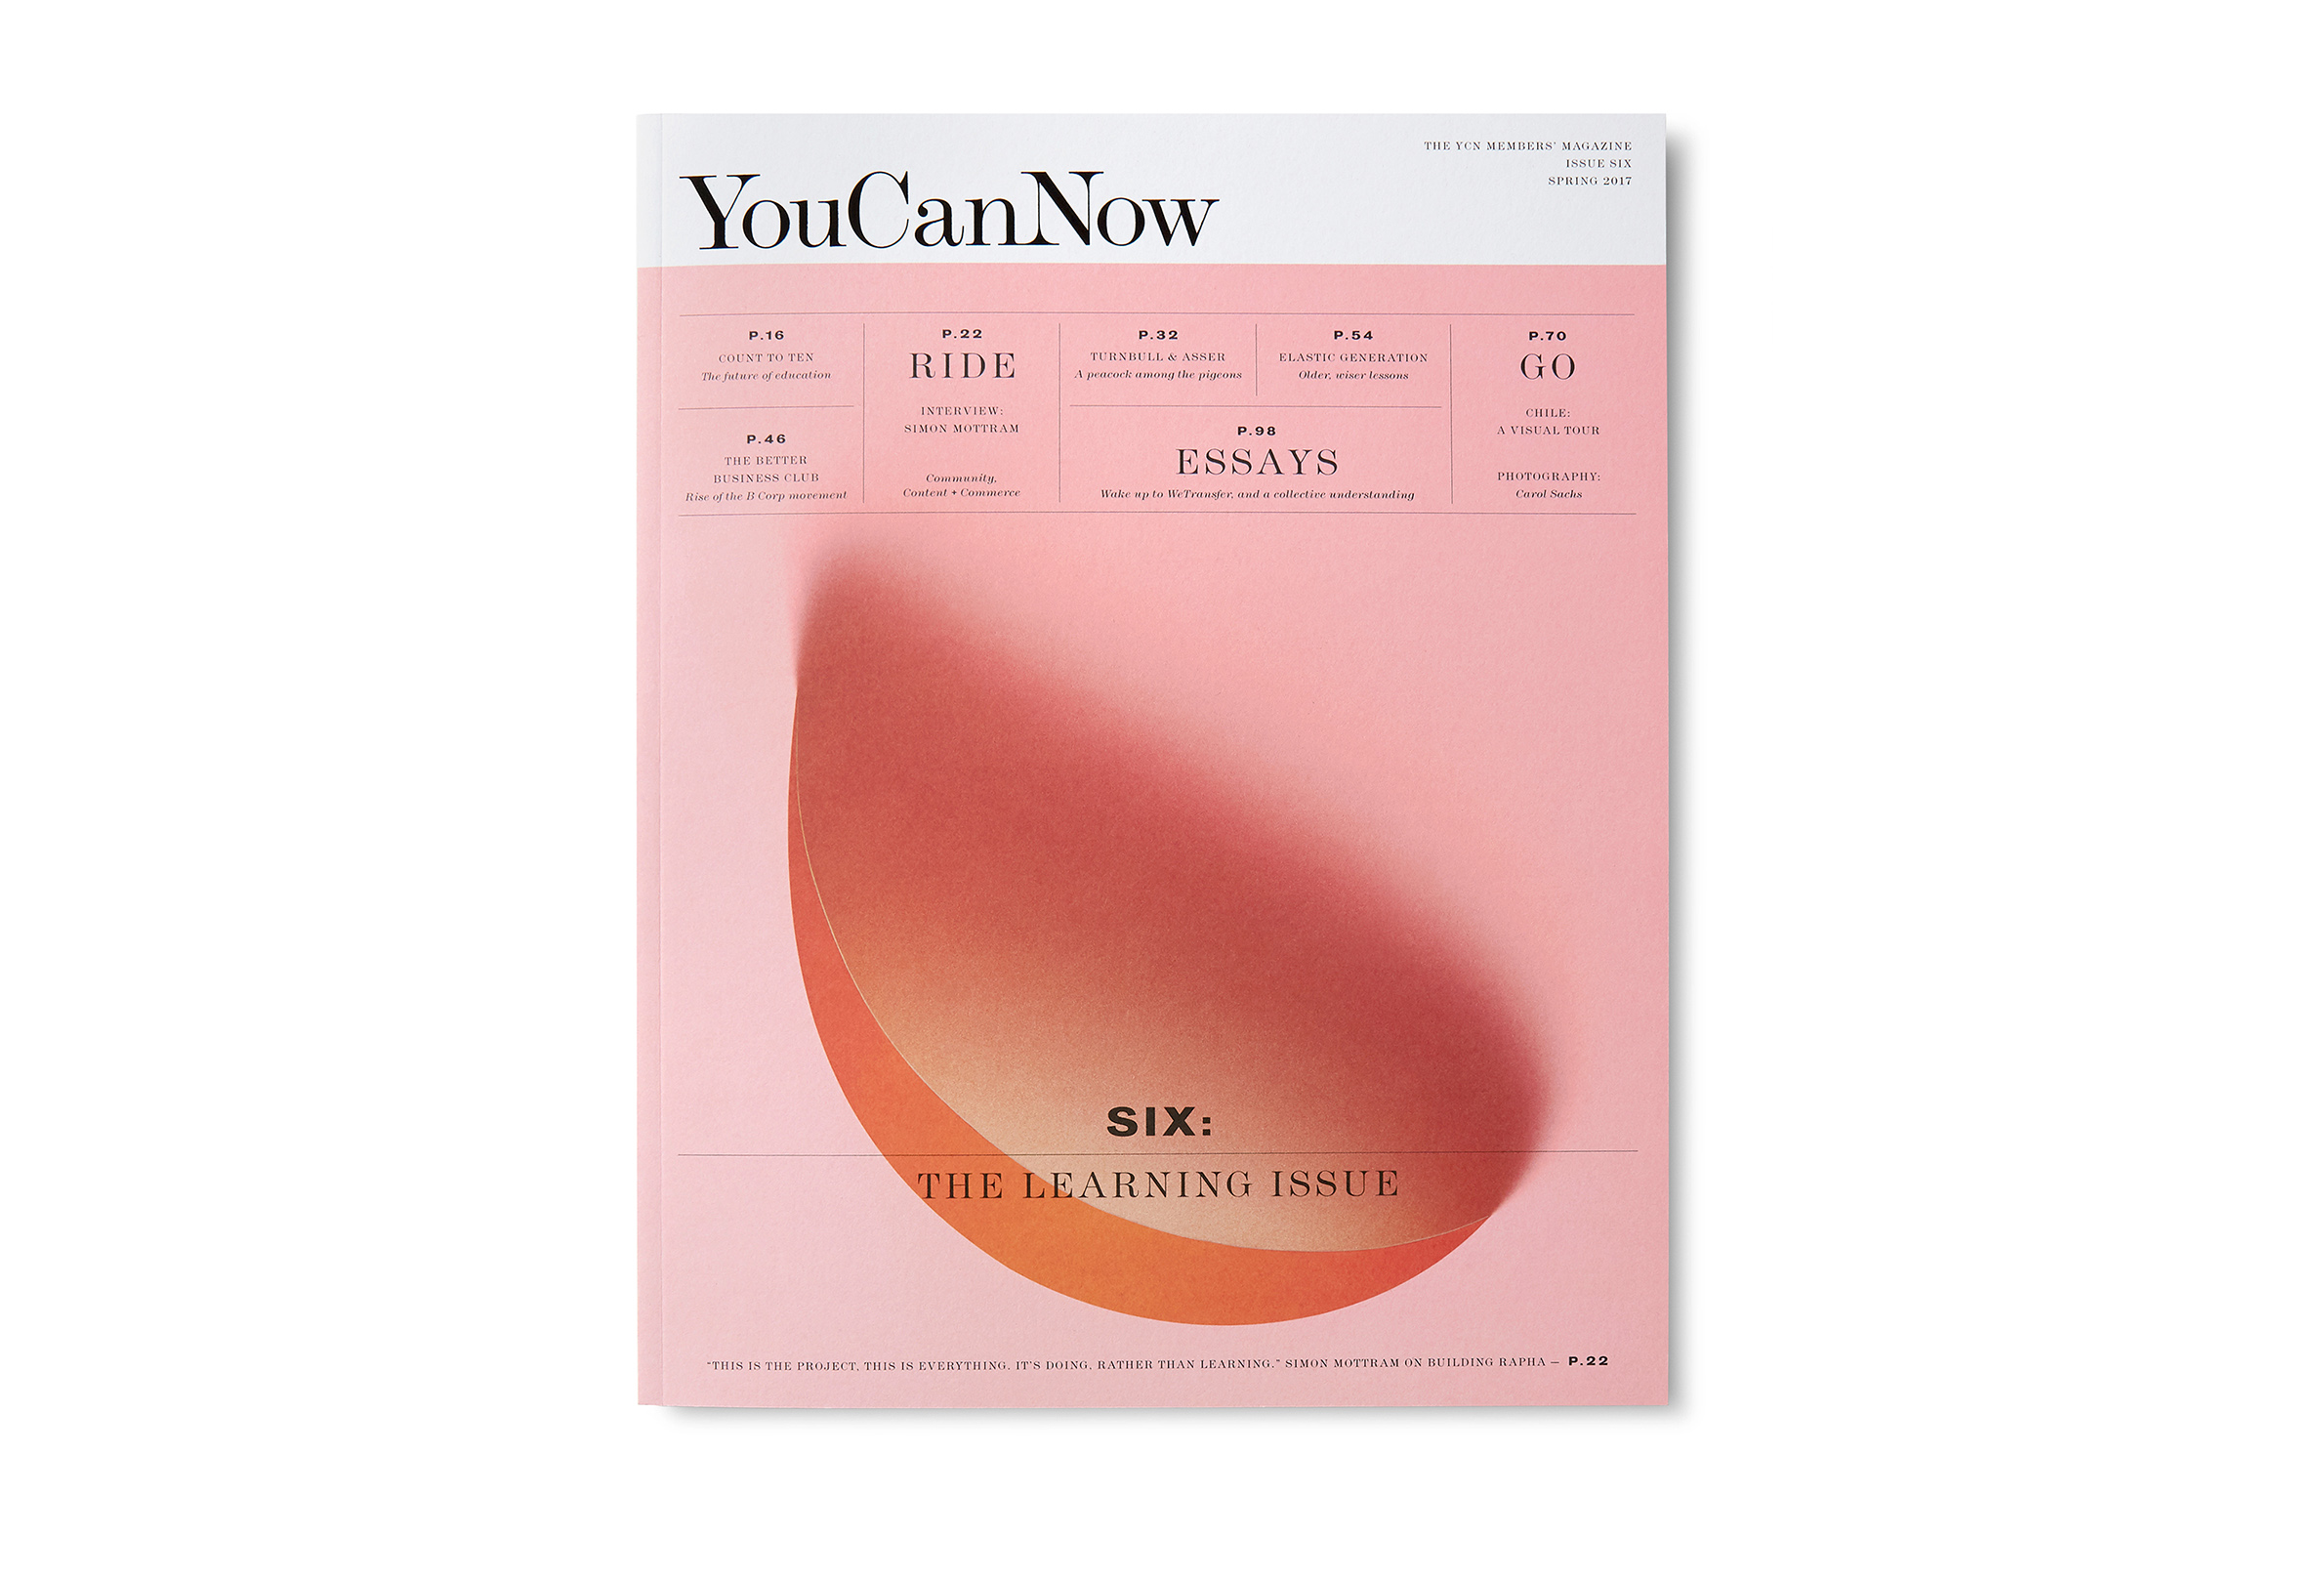 You Can Now Issue 06 — Alex Hunting Studio